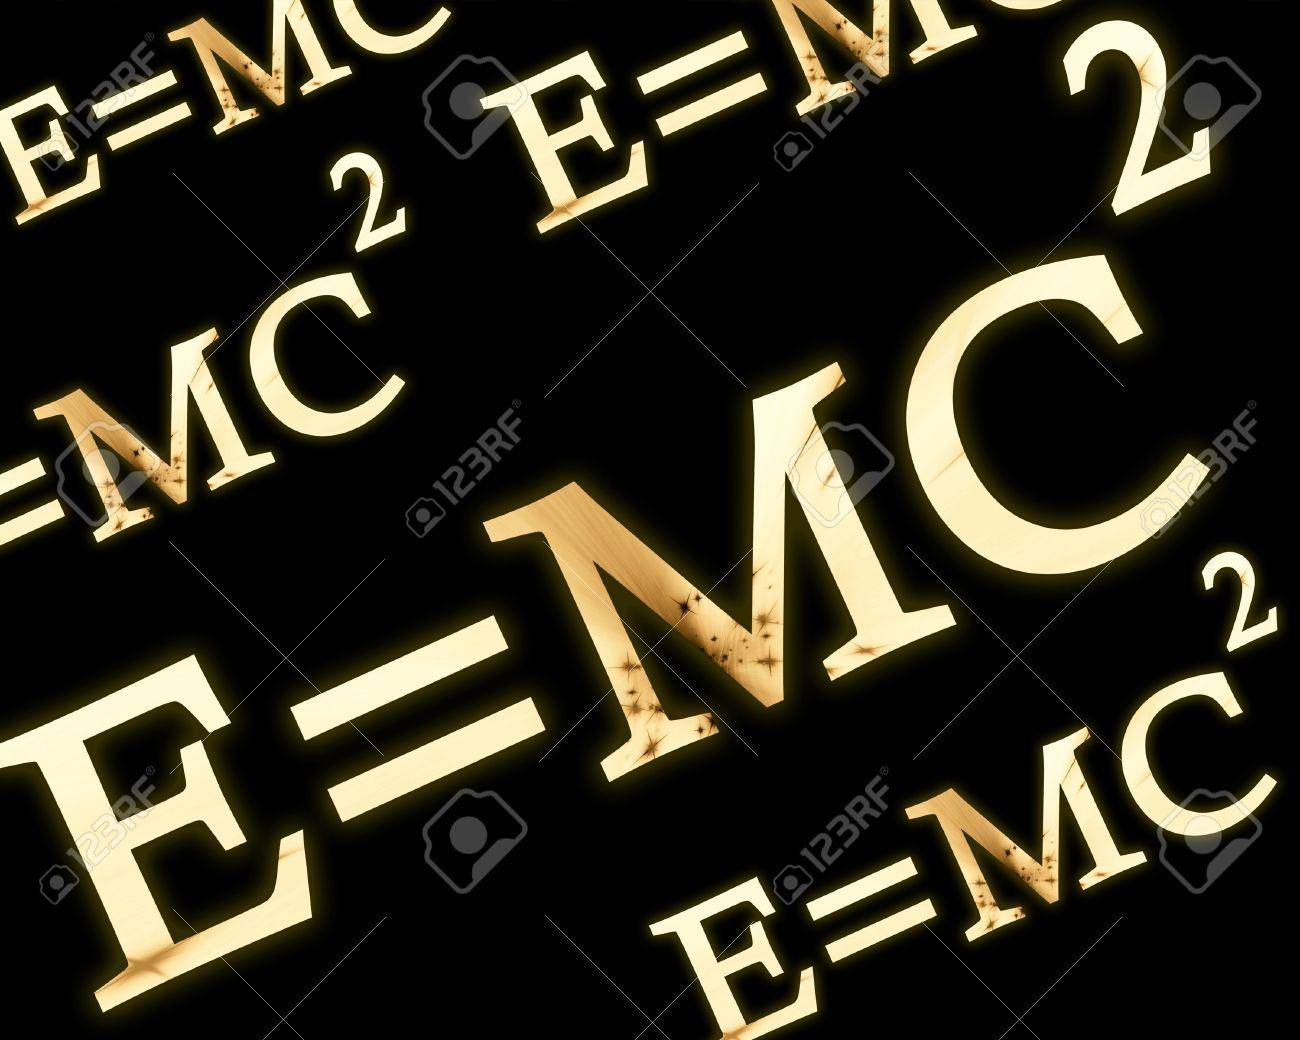 Emc2 Formula On A Solid Black Background Stock Photo Picture And